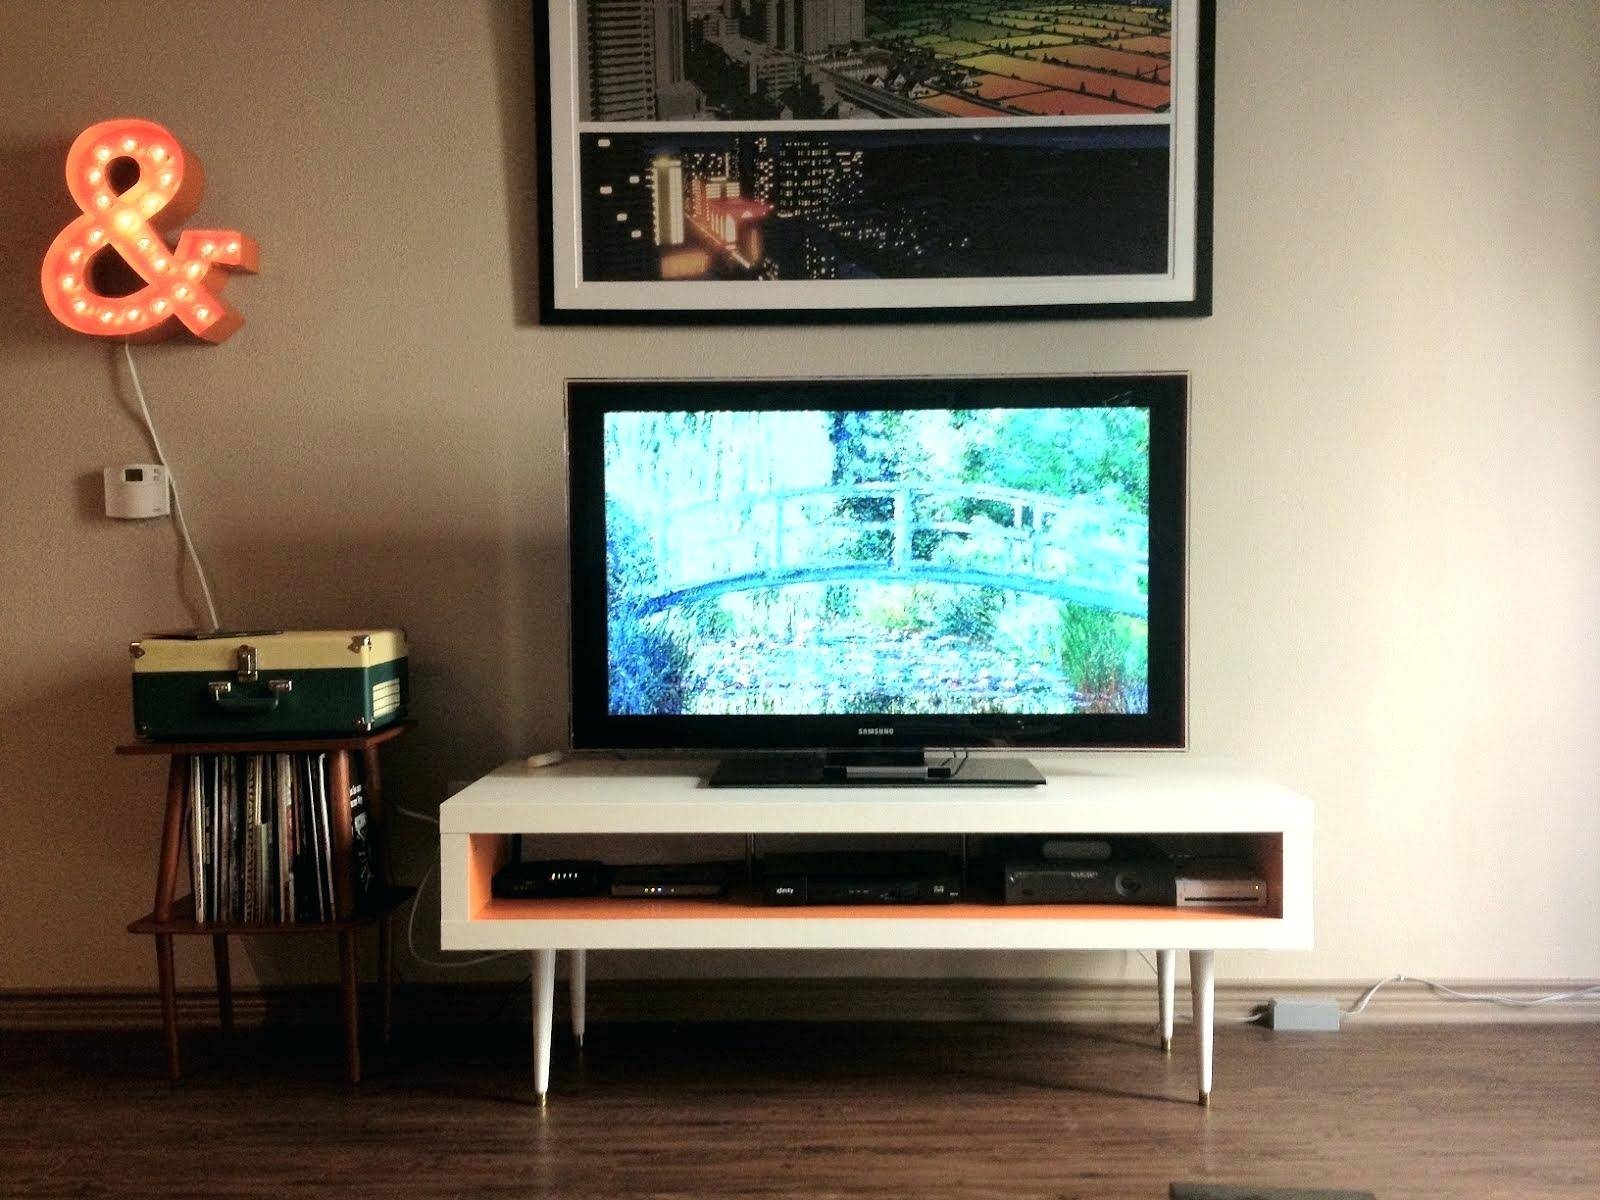 Tv Stand : Furniture Ideas 60 Techlink Facet Ftp100Lo Tv Stand in Ovid White Tv Stand (Image 9 of 15)